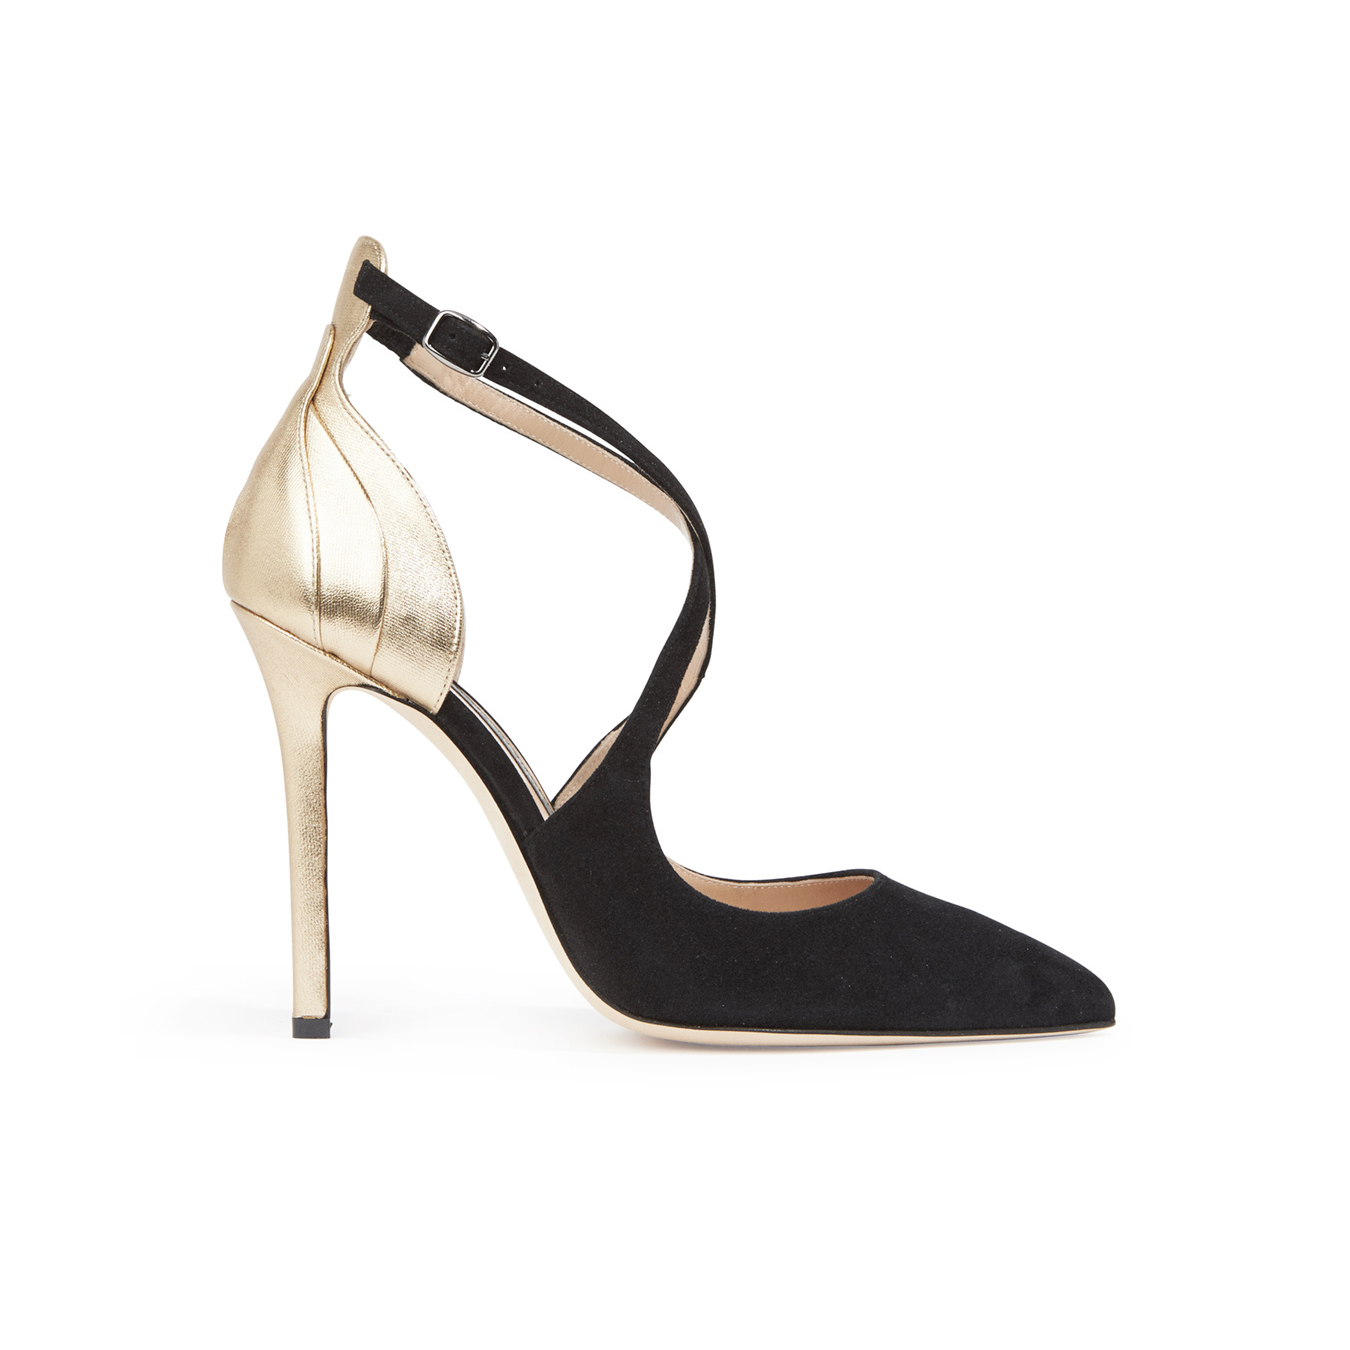 Zac Posen Strappy Pumps